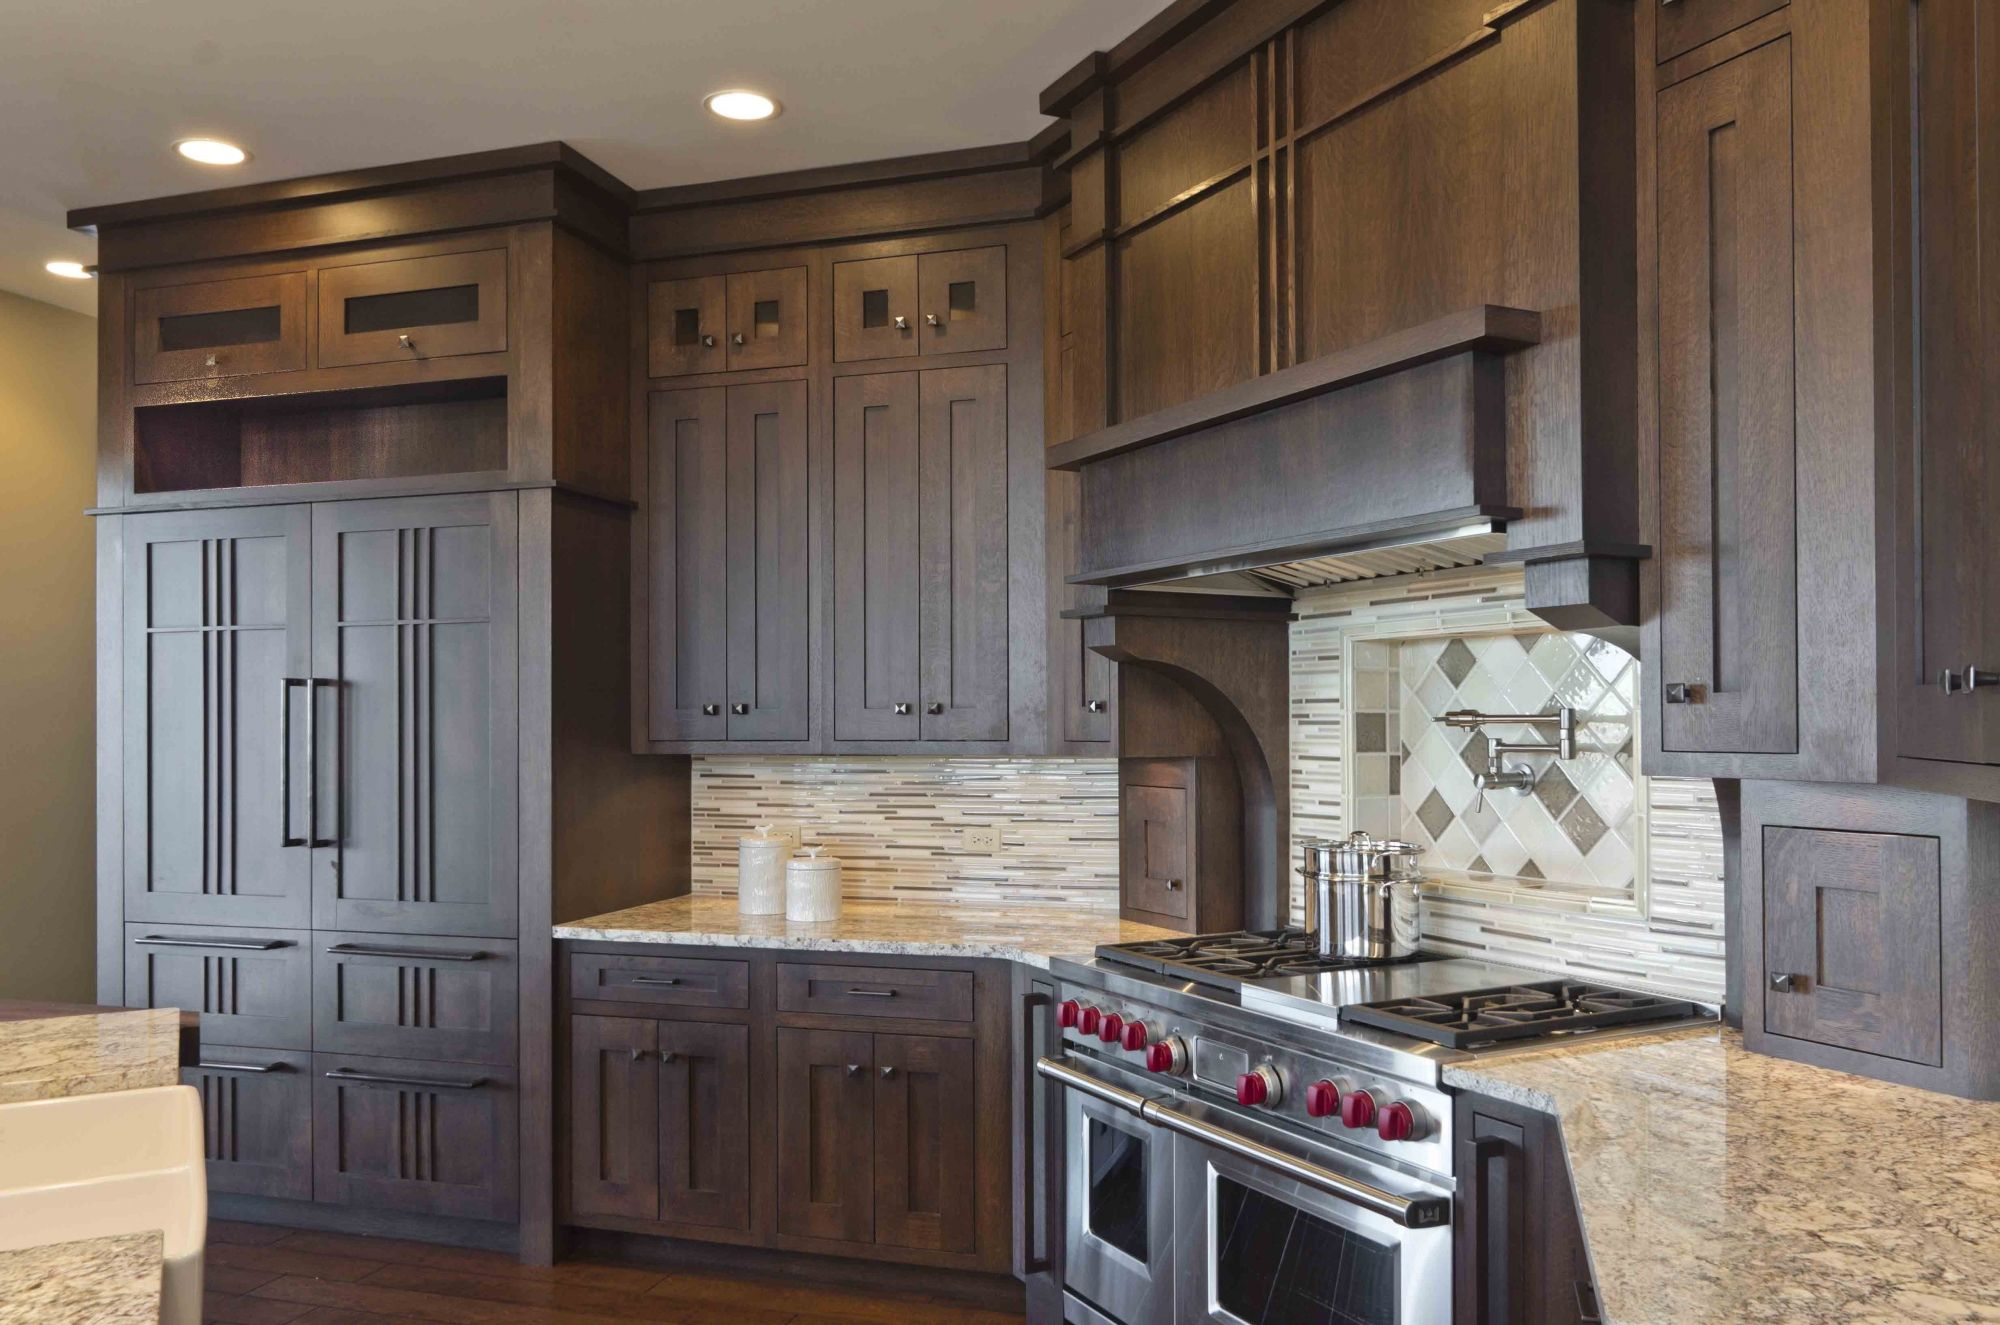 17 best images about prairie style on pinterest | craftsman